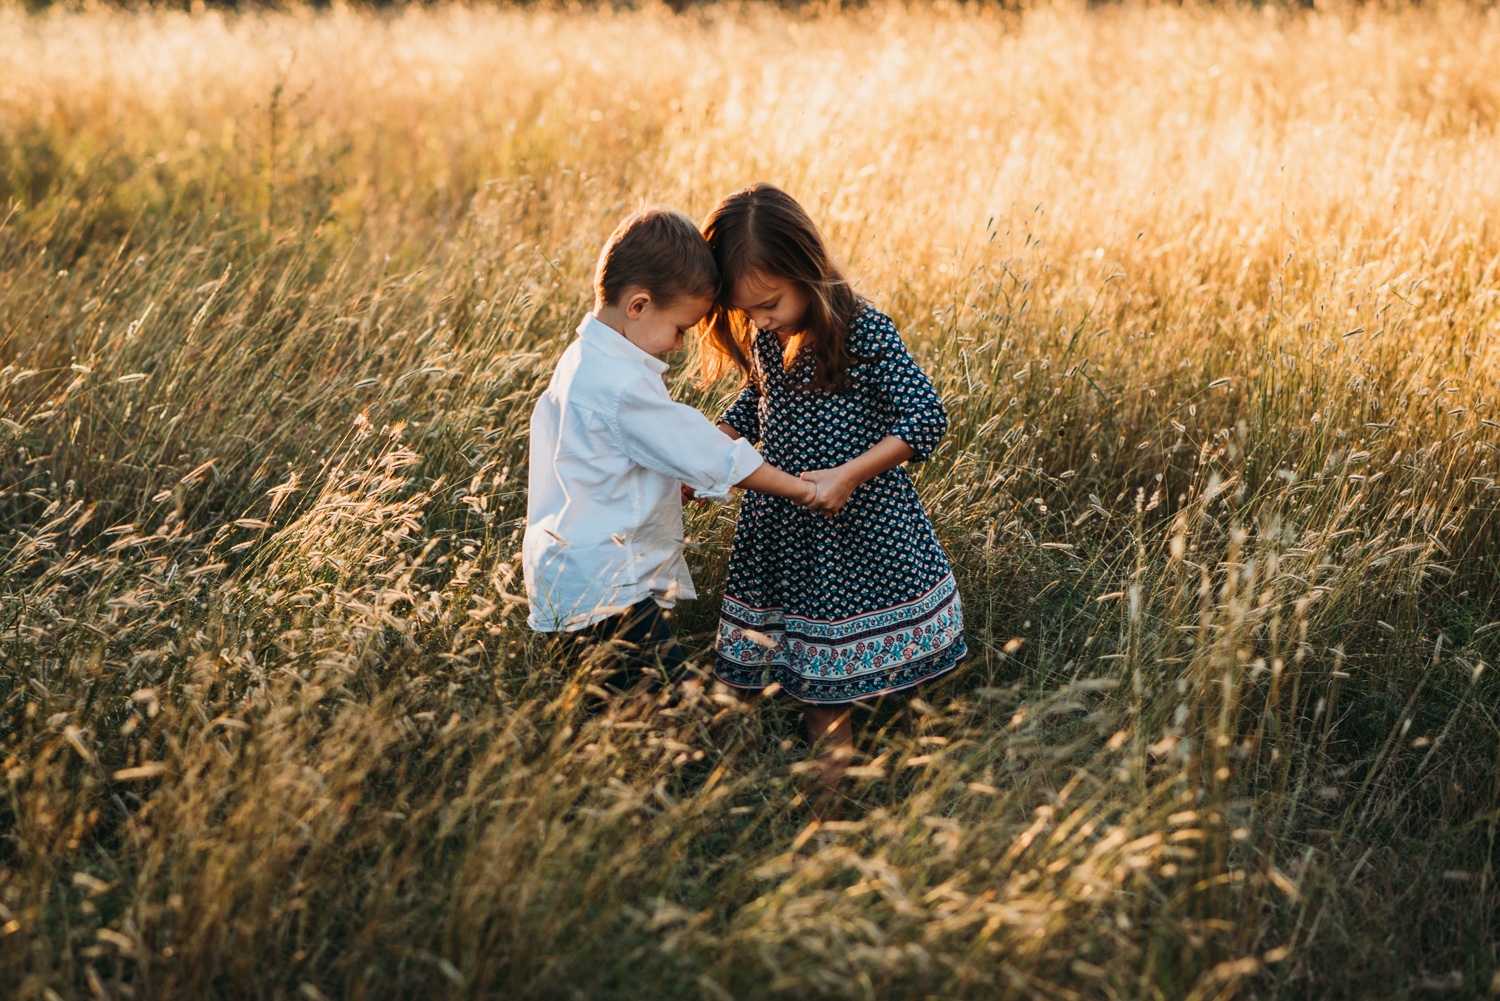 Abby Kennan, San Antonio Lifestyle Photographer-Abby Kennan Photography-San Antonio Family Photographer-18.jpg